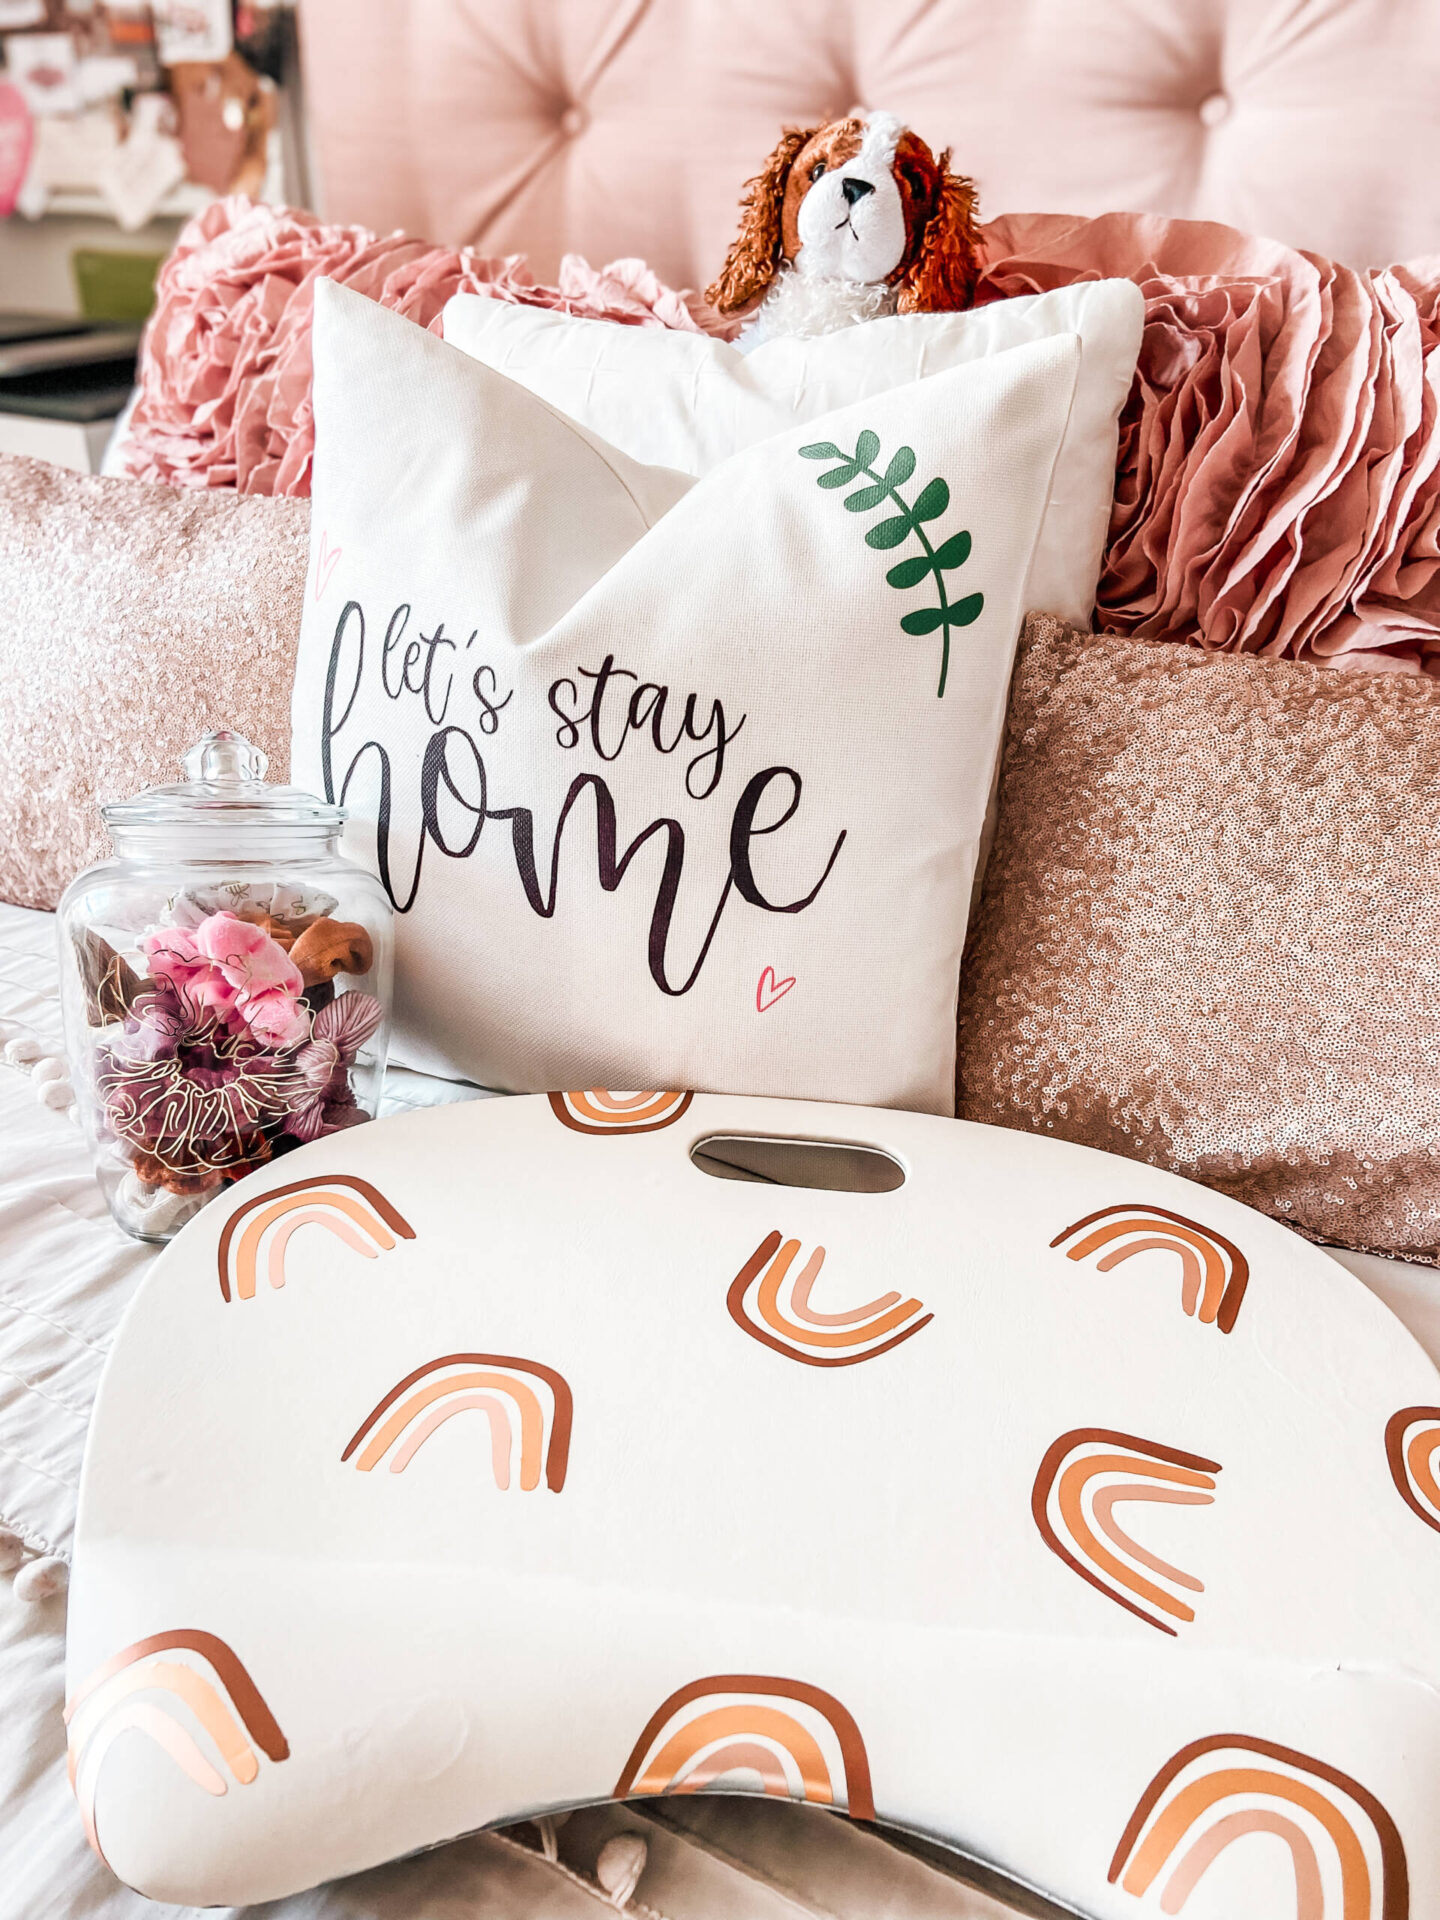 Upcycling Home Decor with Cricut